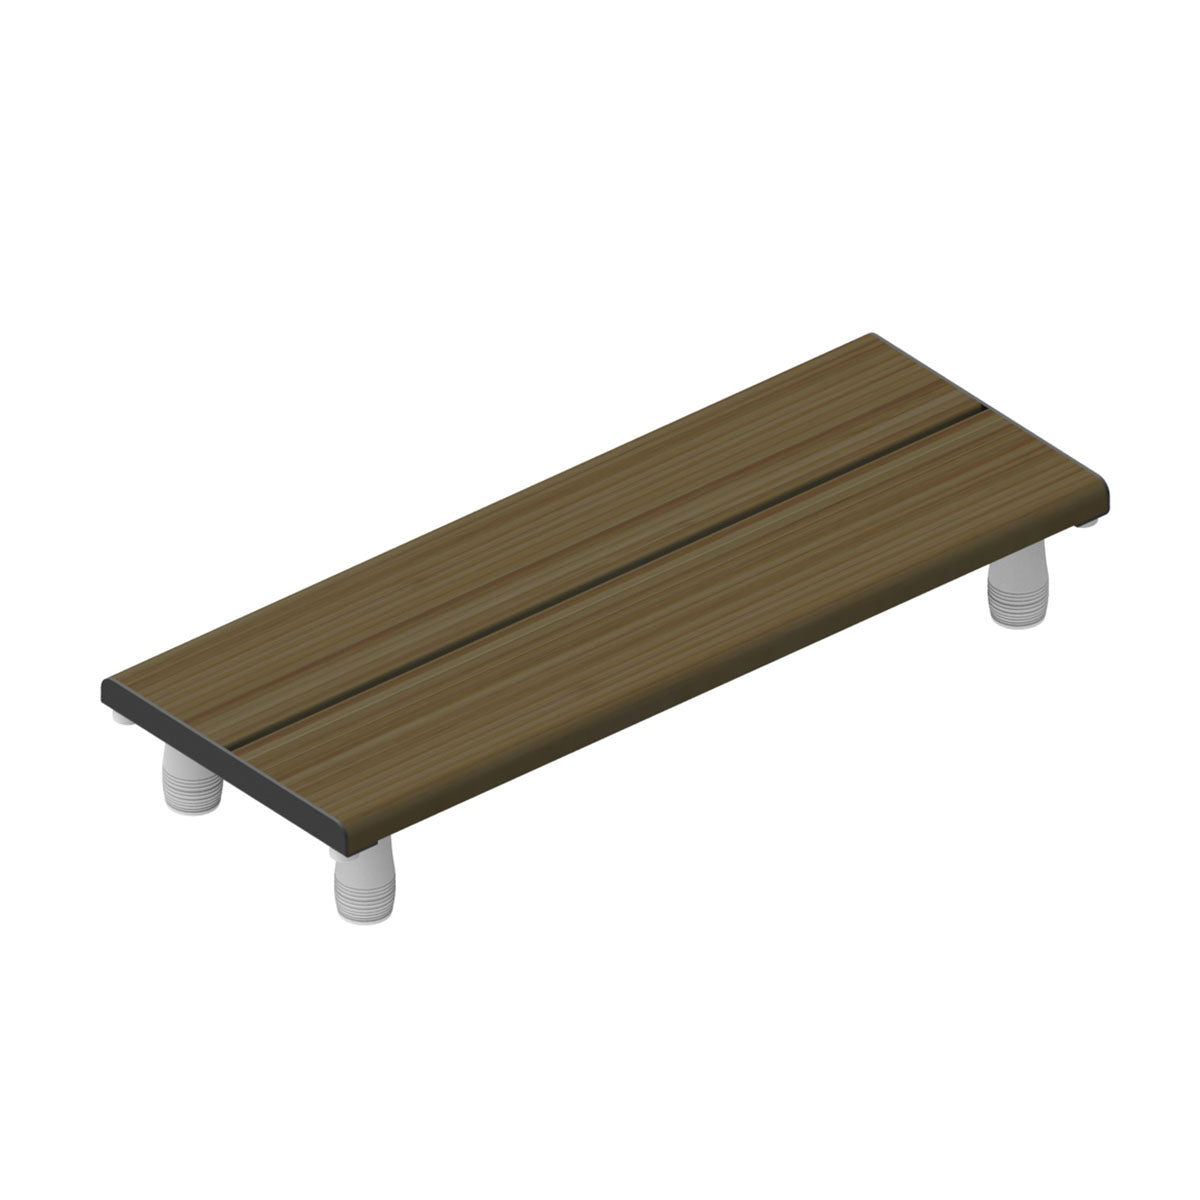 Invisia Bath Bench